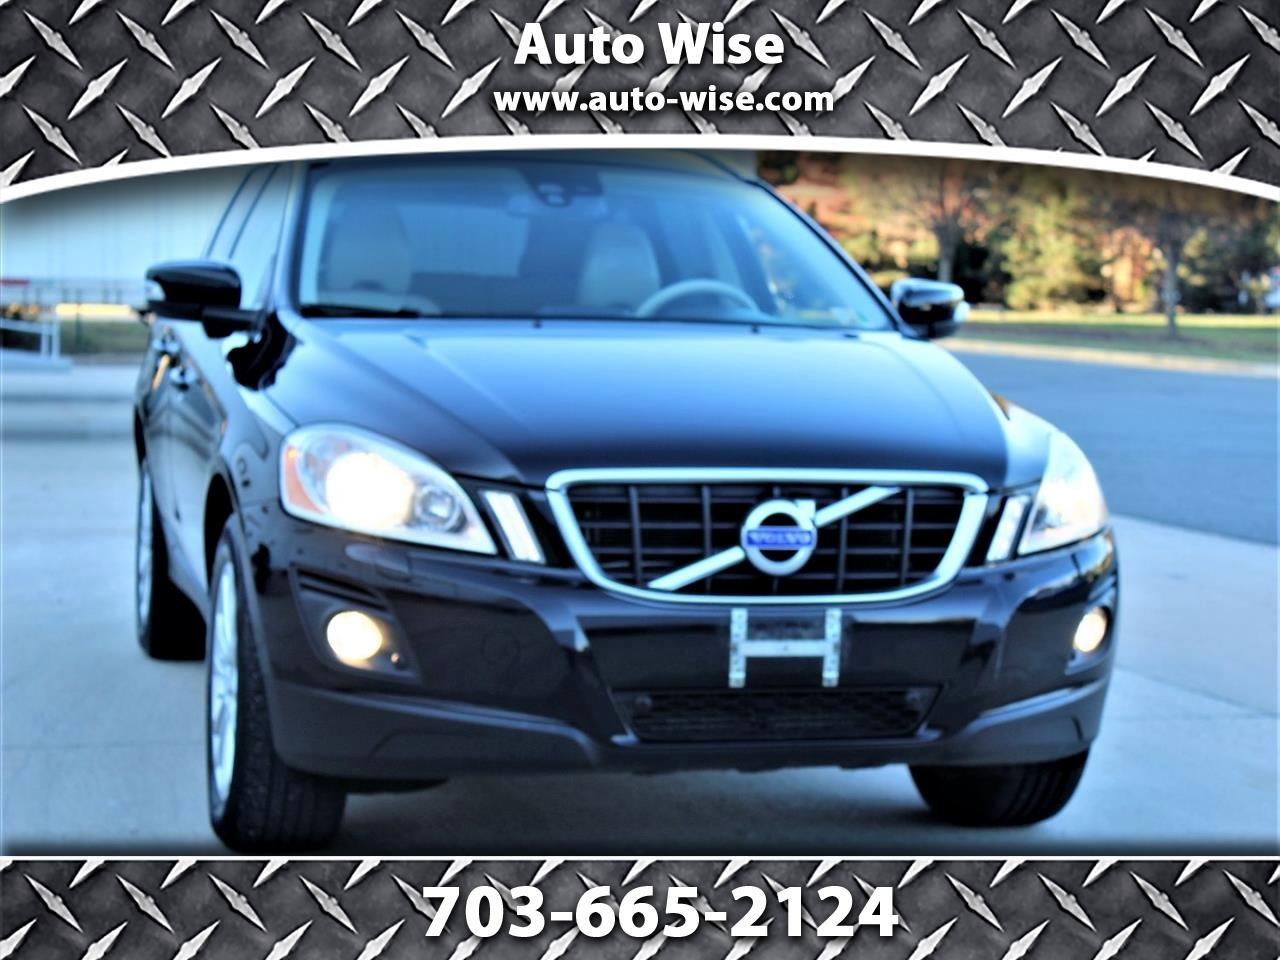 2010 Volvo XC60 AWD 4dr 3.0T w/Moonroof